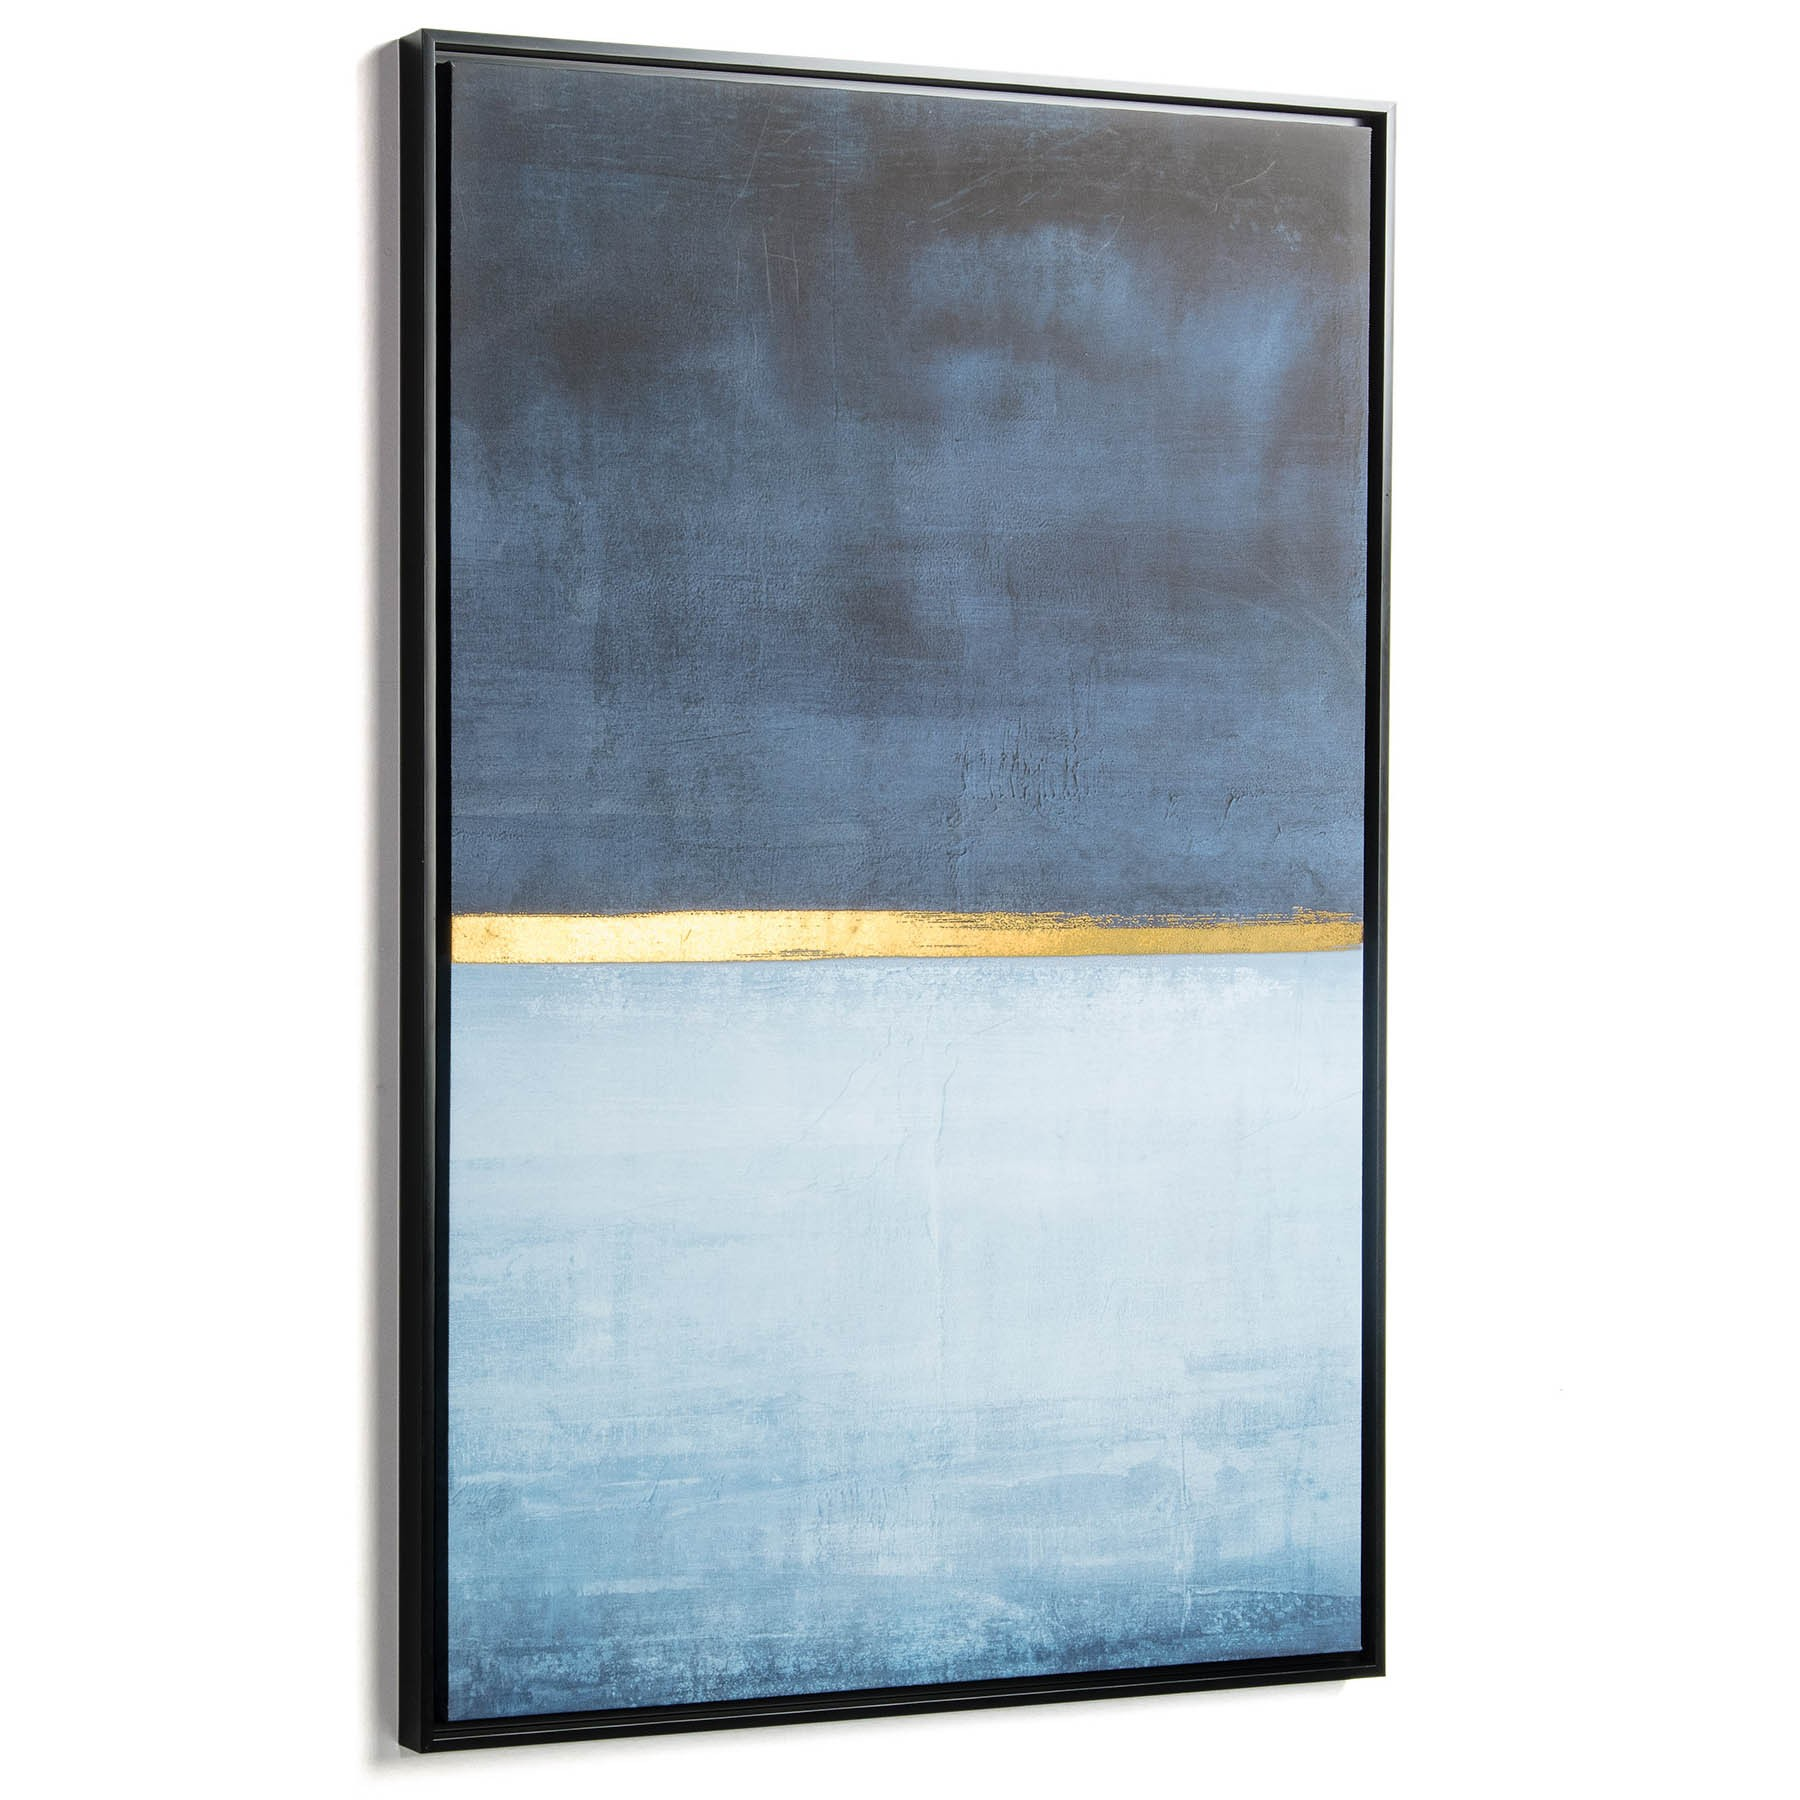 Anmer Framed Abstract Canvas Wall Art Print, Blue Shade, 90cm